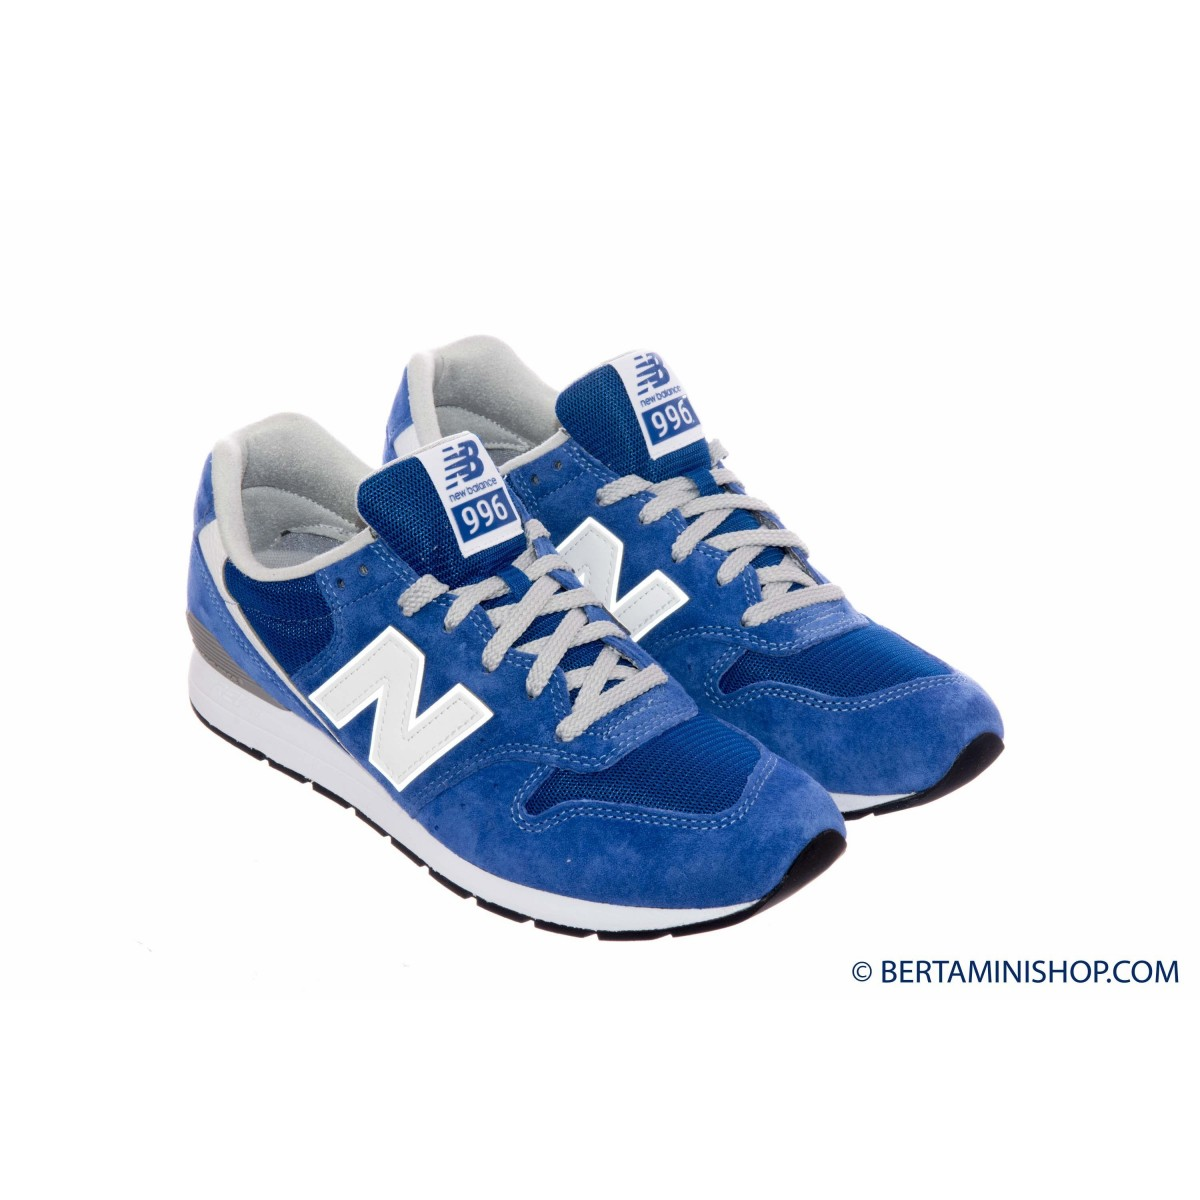 Schuhen New Balance Manner - MRL 996 KE - Gialla